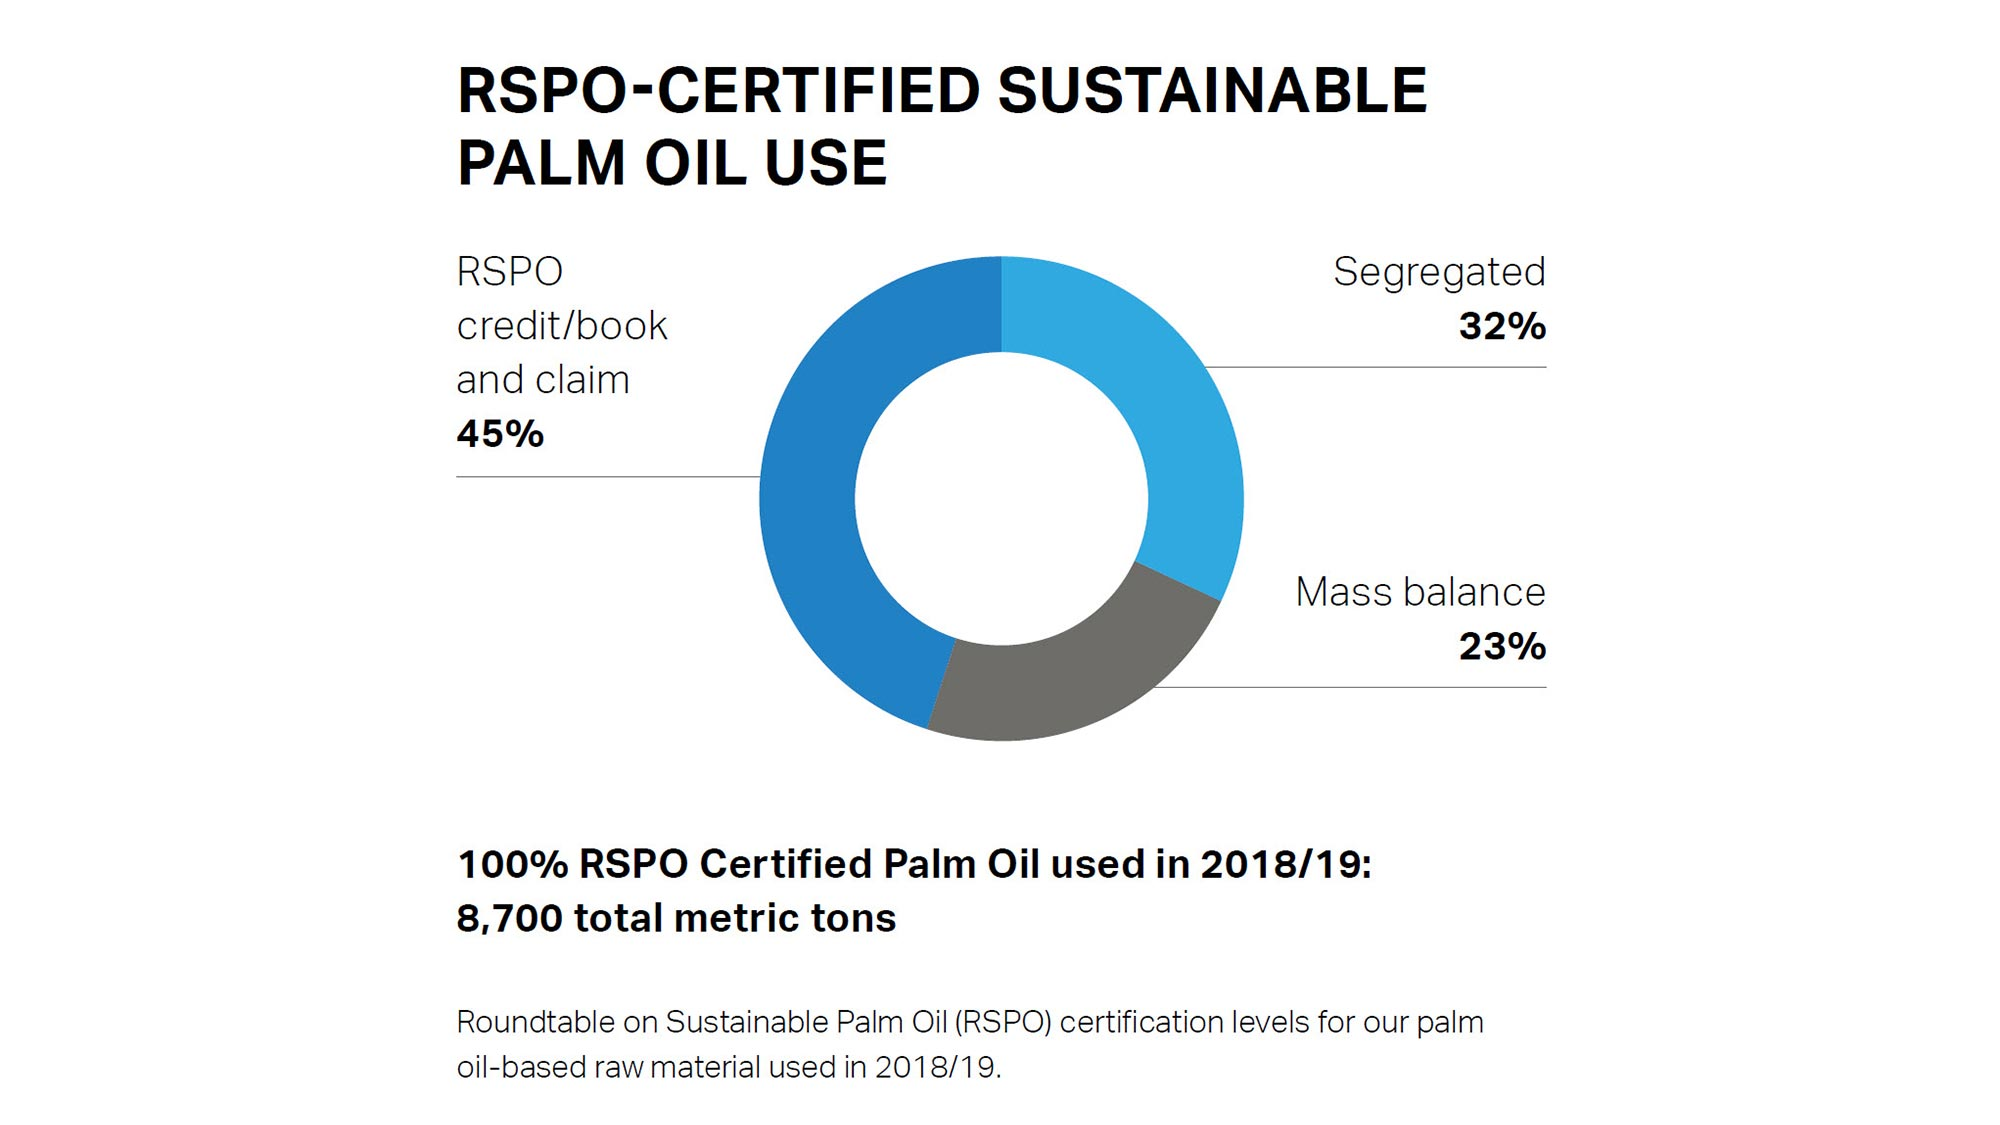 pie graph of sustainable palm oil use over the years